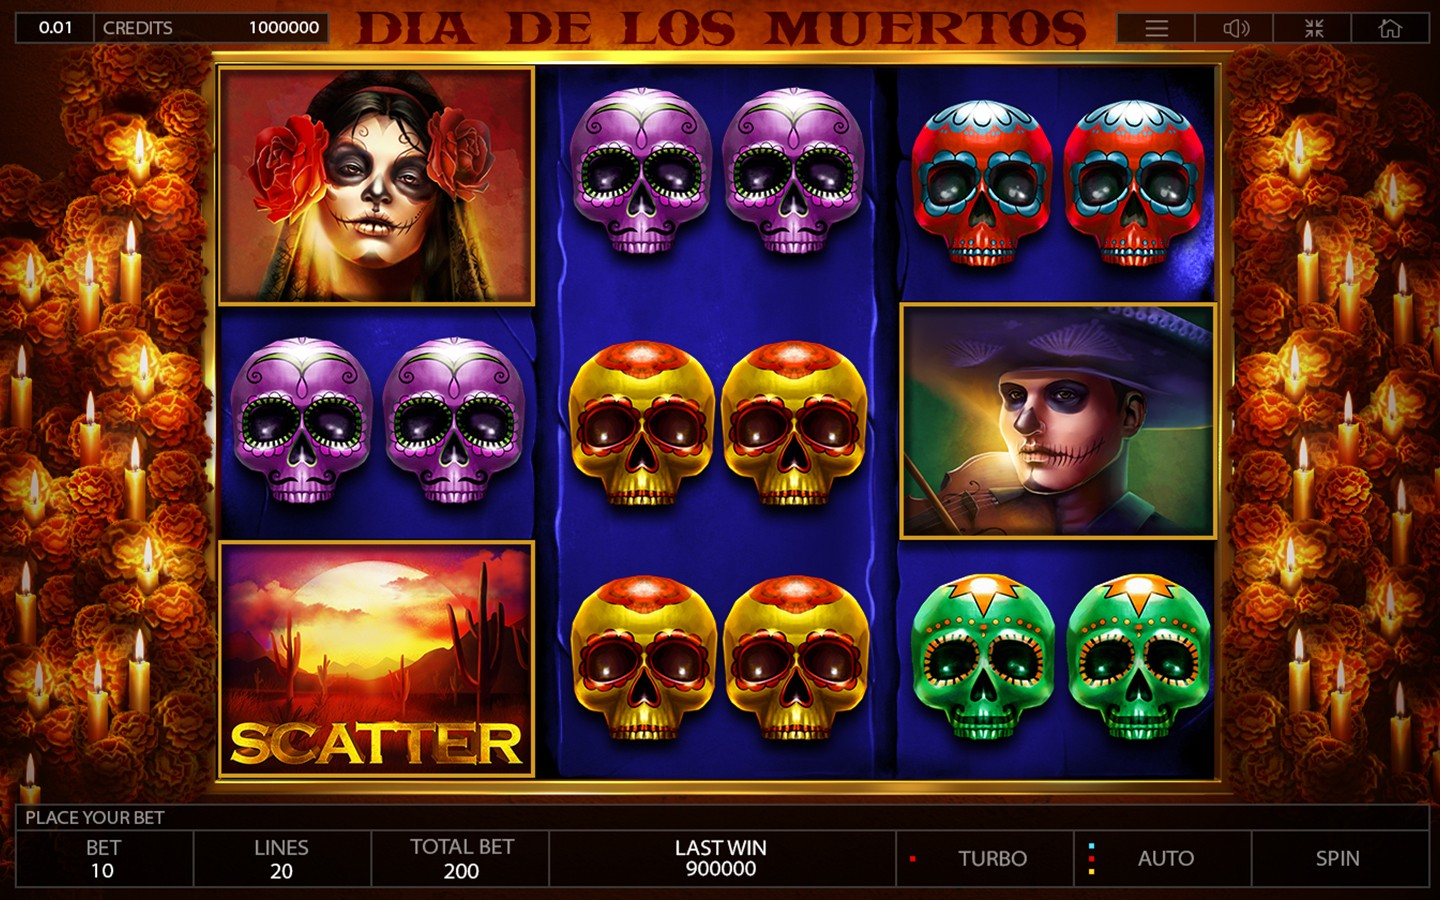 Most Sinister Ways Casinos Keep You Gambling